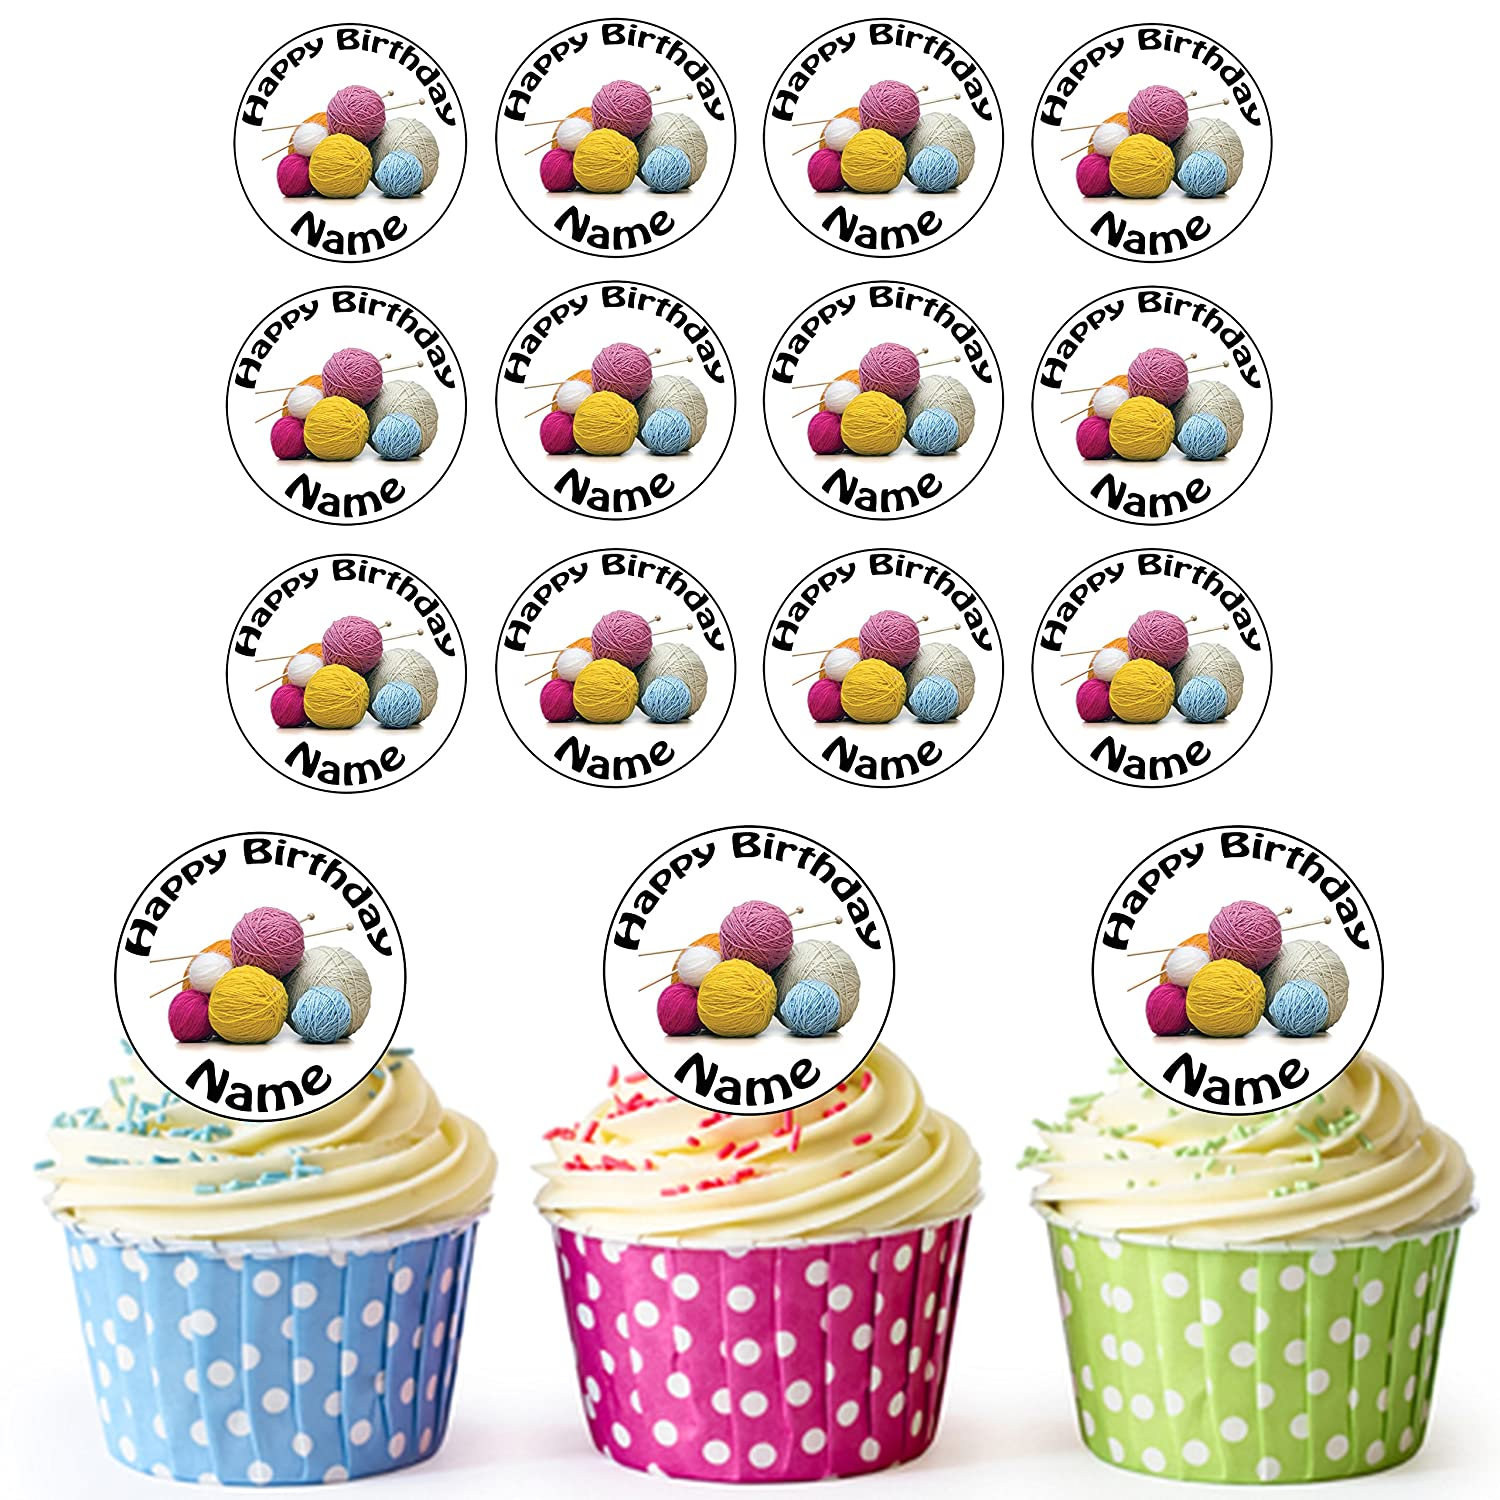 Easy Precut Circles Knitting 24 Personalised Edible Cupcake Toppers//Birthday Cake Decorations